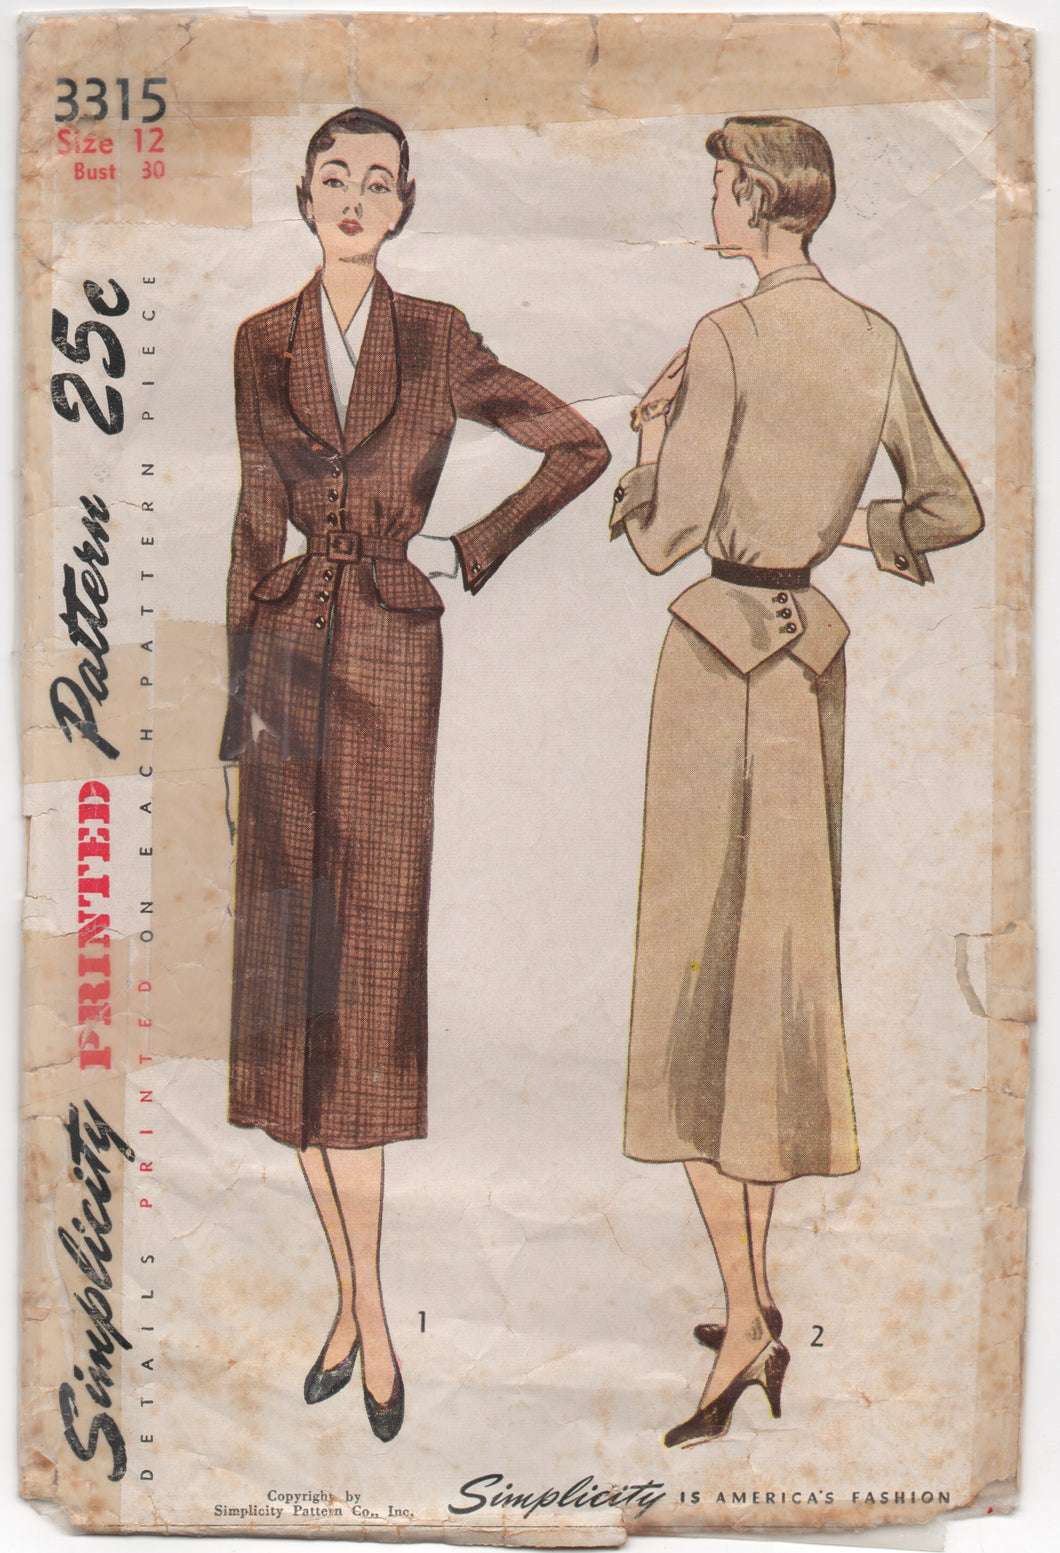 1950's Simplicity One Piece Dress with Button Front, Cross Peplum, and Dickey - Bust 30